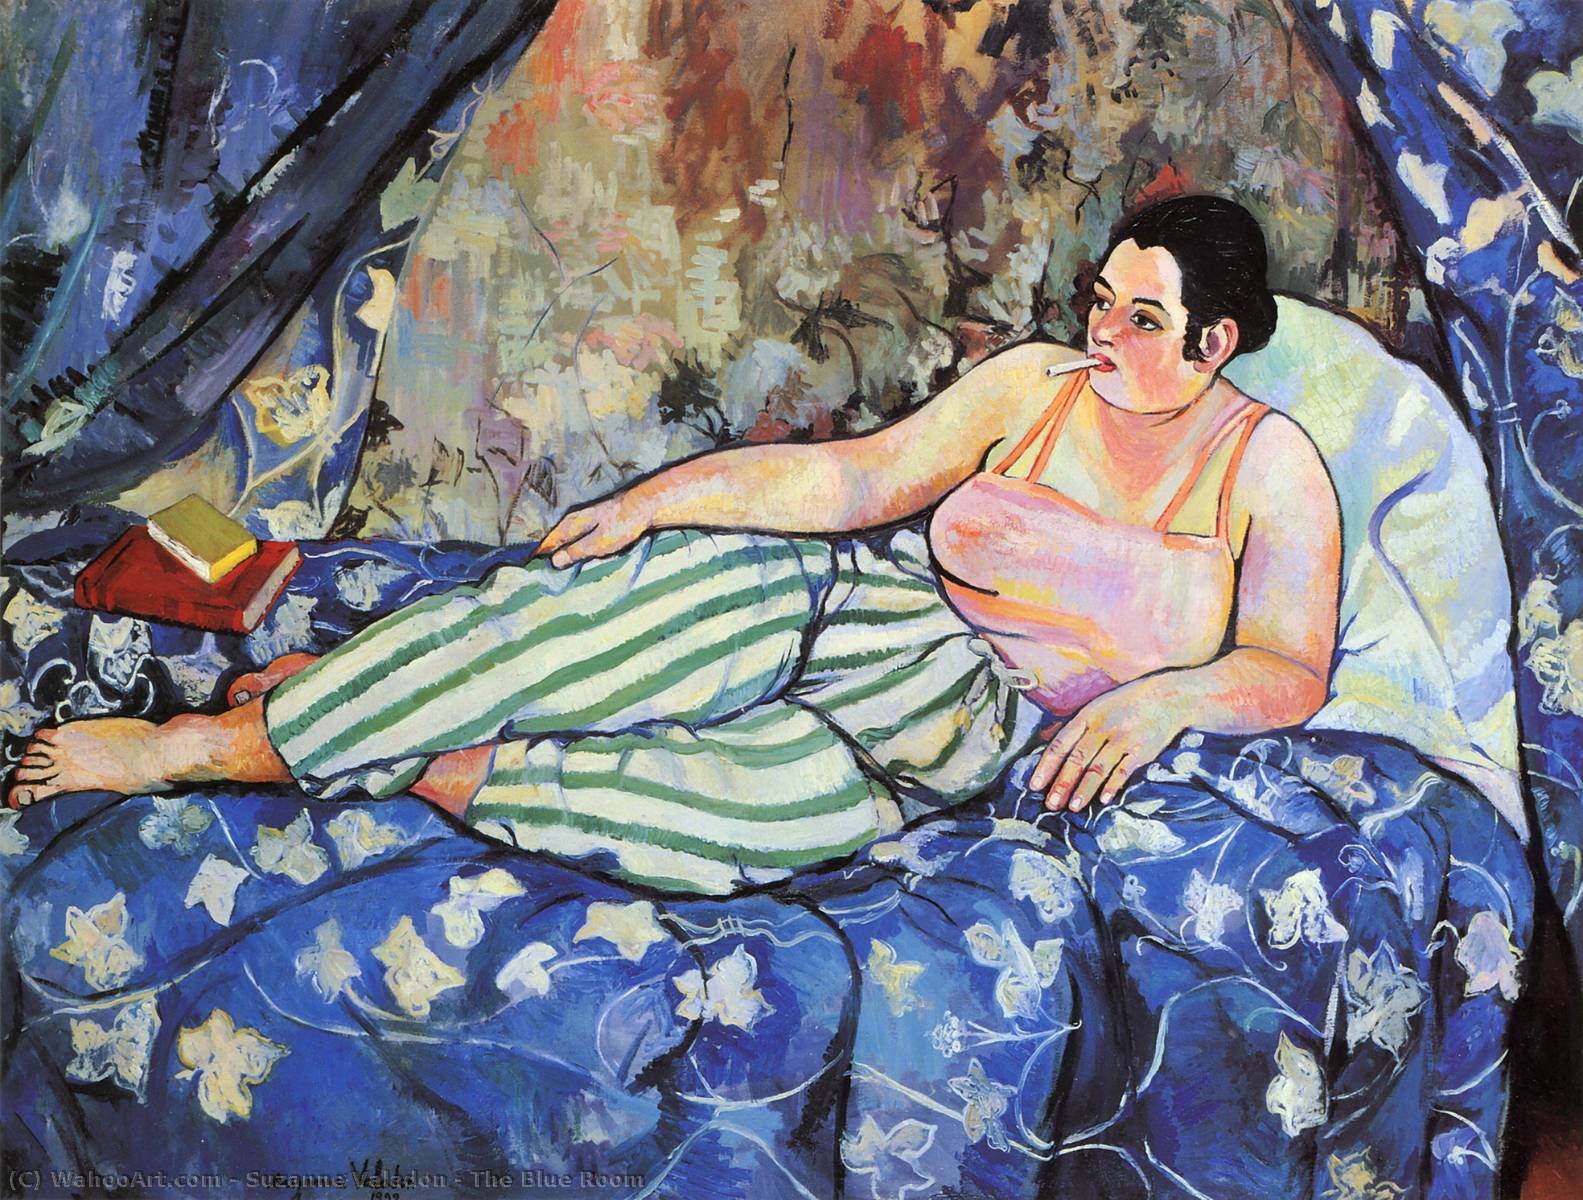 Order Paintings Reproductions | The Blue Room by Suzanne Valadon | Most-Famous-Paintings.com